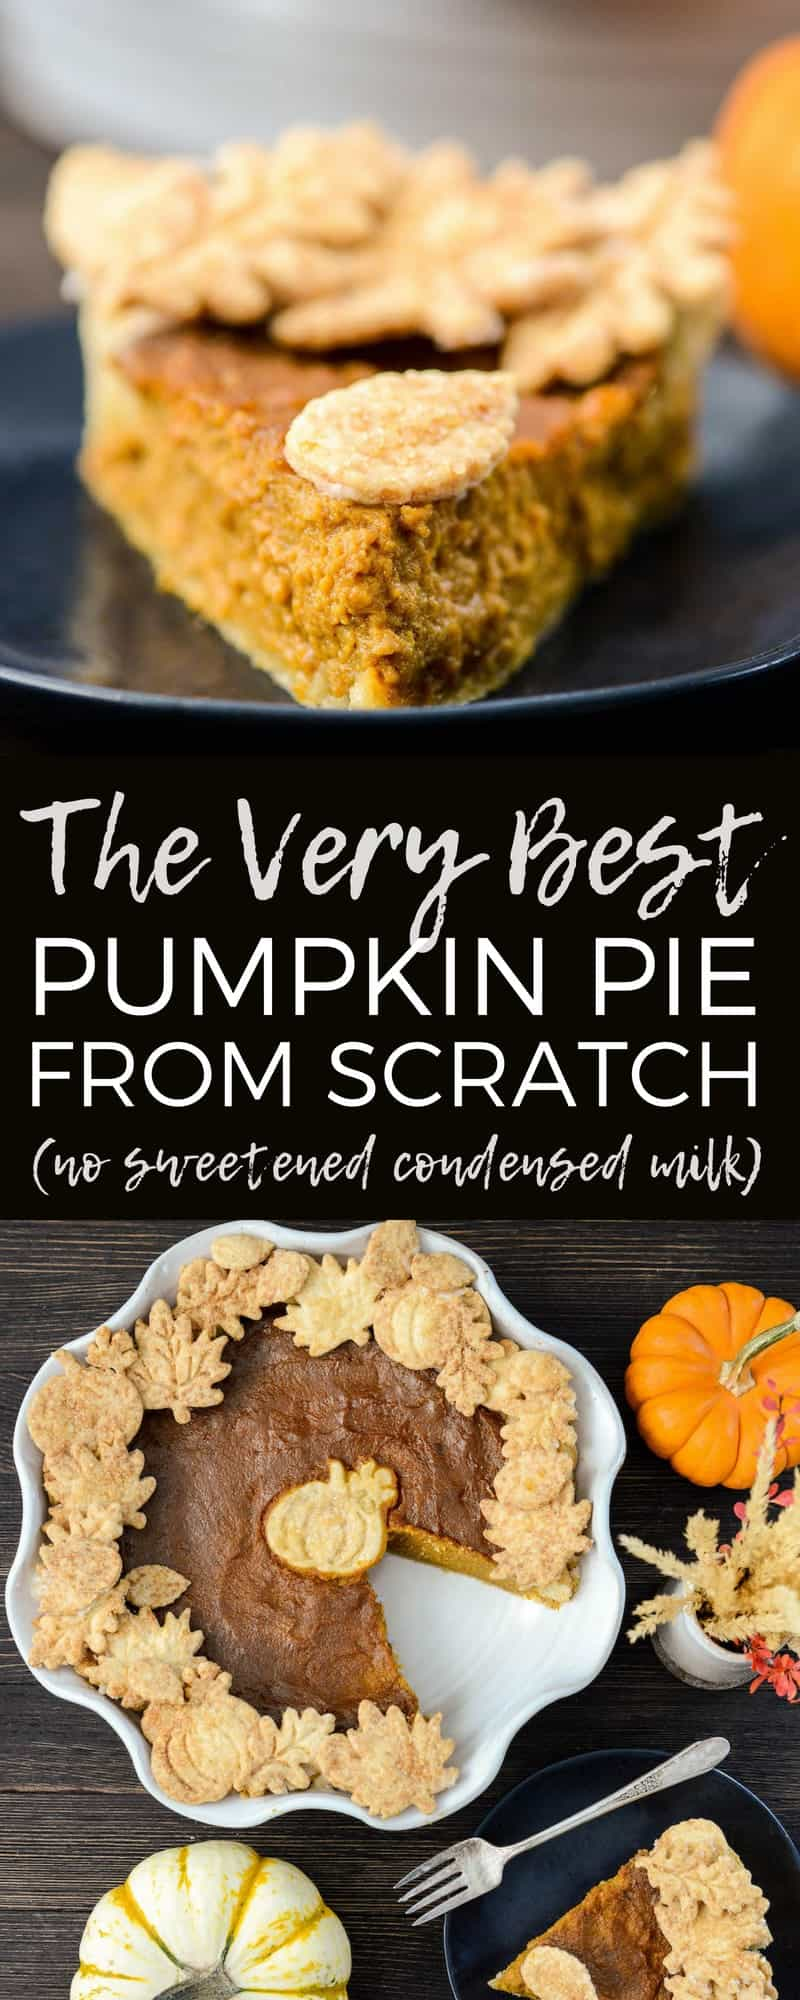 The BEST Pumpkin Pie Recipe Ever! Made completely from scratch (NO sweetened condensed milk here)! It's THE pie you need to make on Thanksgiving this year! #pumpkinpie #recipe #fromscratch #thanksgiving #pumpkin #dessert